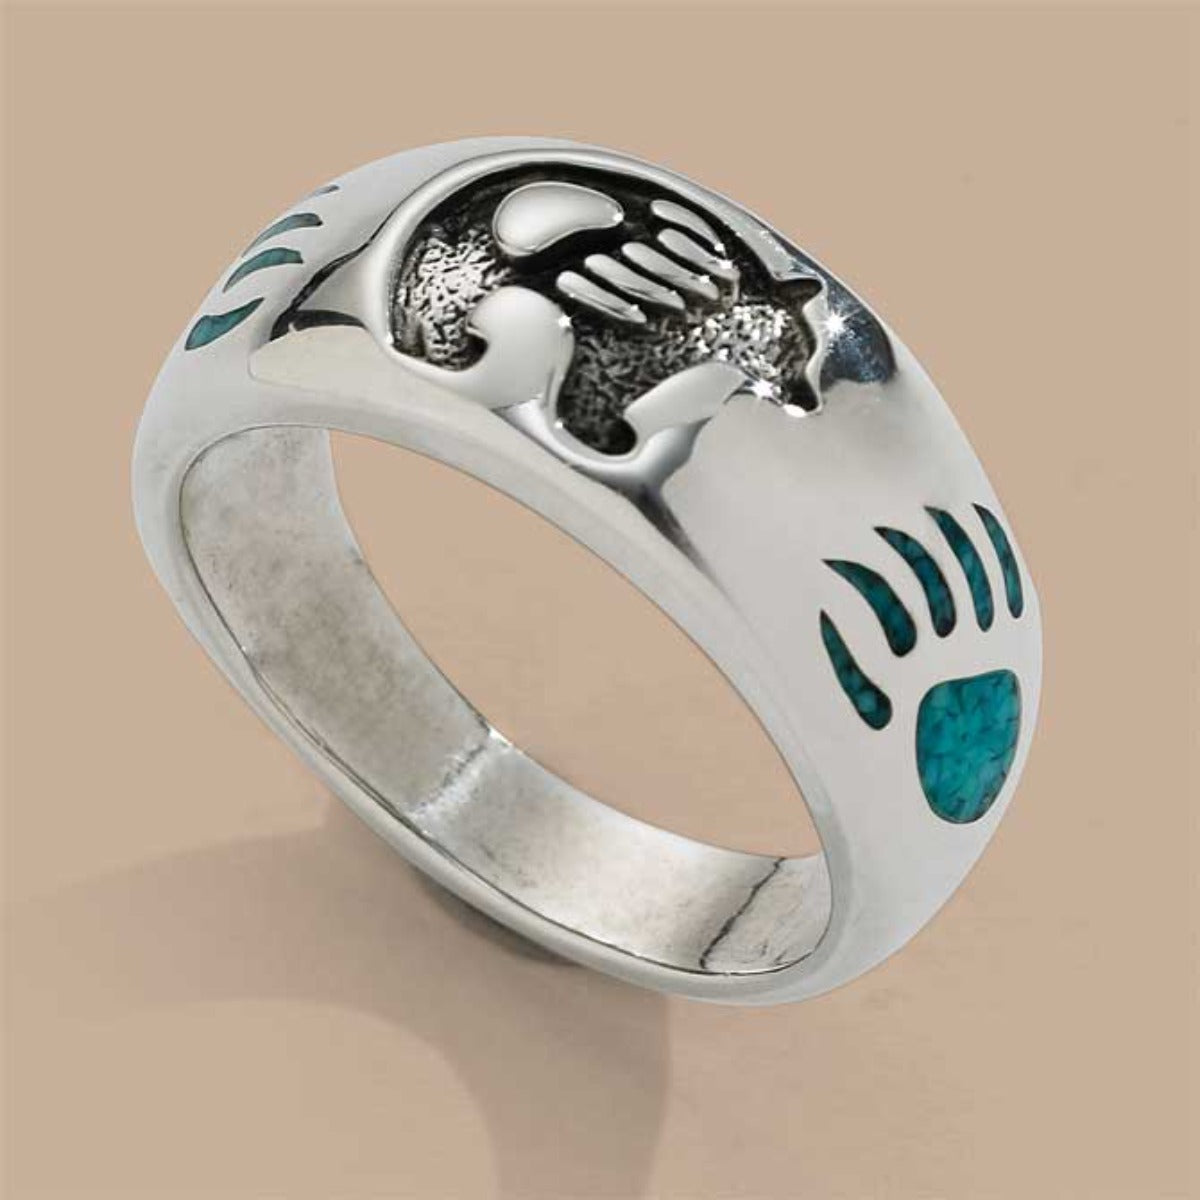 Bear Symbol Ring - 925 Sterling Silver